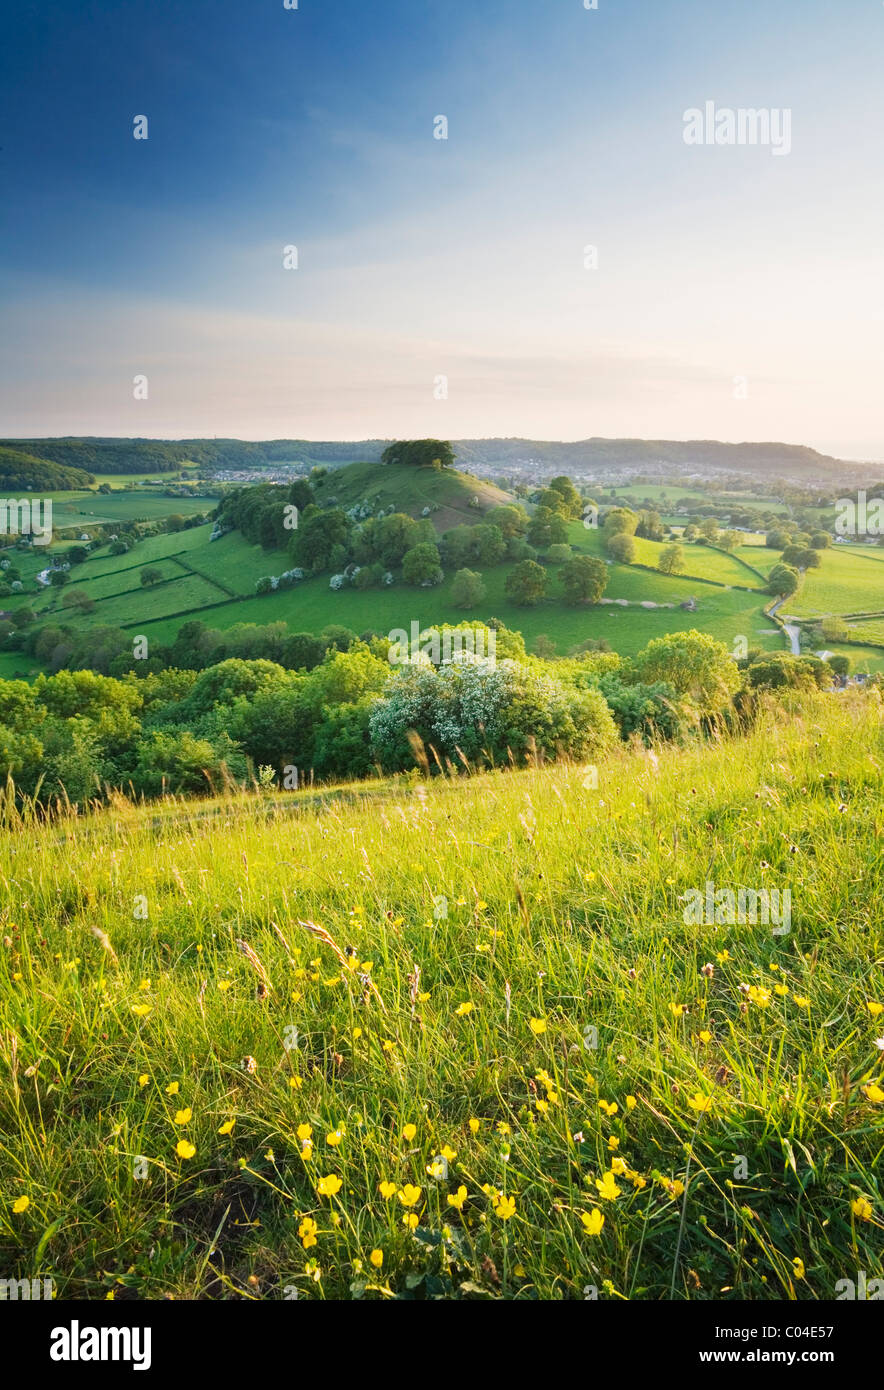 Downham Hill from Uley Bury. The Cotswolds. Gloucestershire. England. UK. Stock Photo